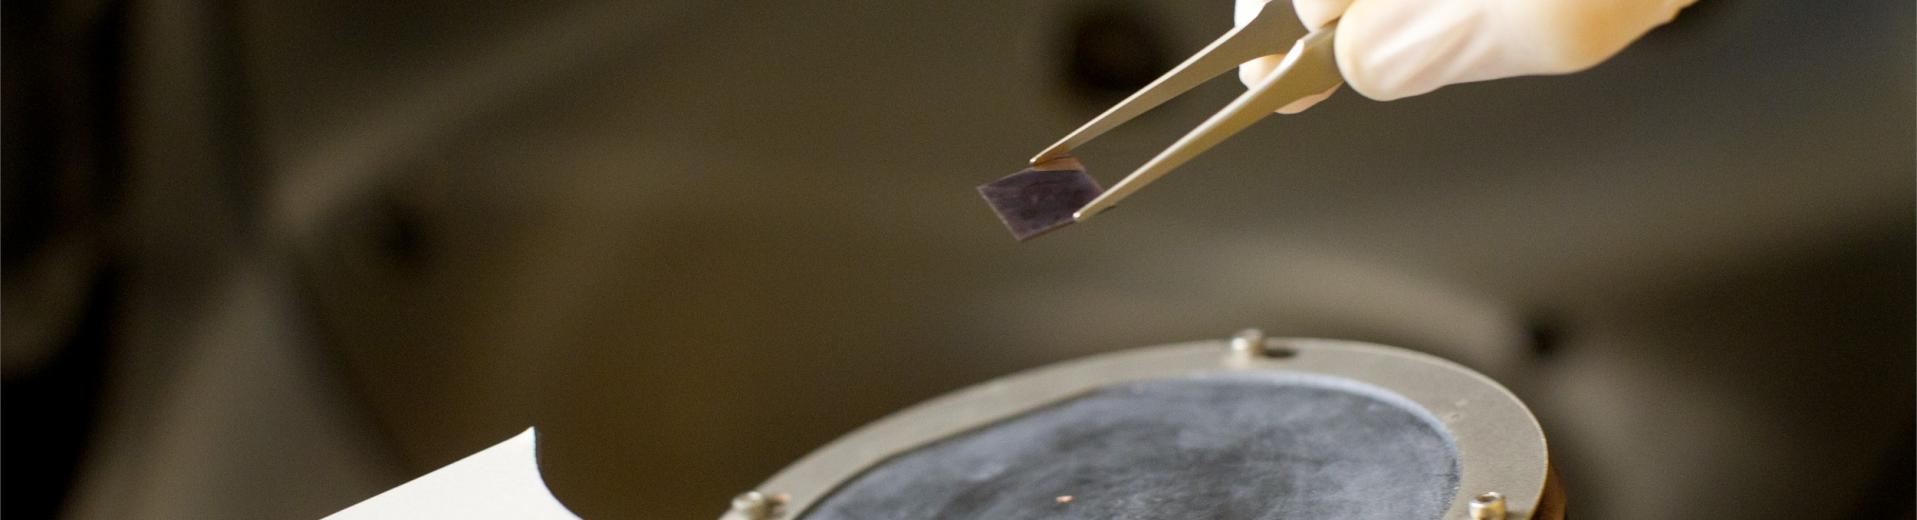 A Temple student holding tweezers performing an experiment in a lab.